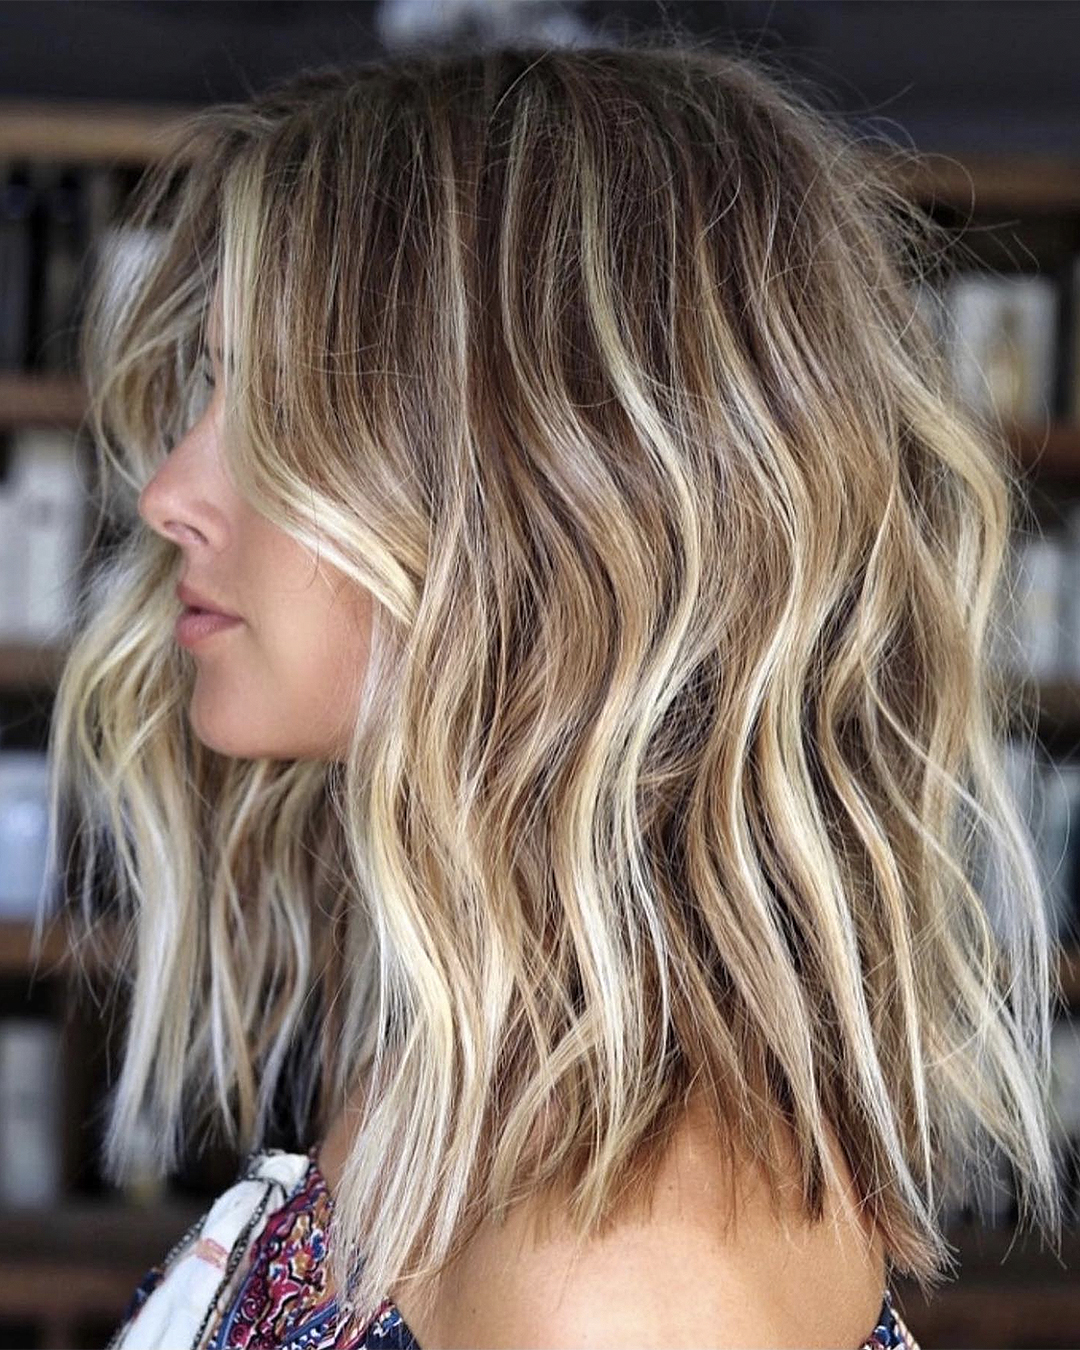 A blonde woman stands side on with hair done by Amiee Marie.